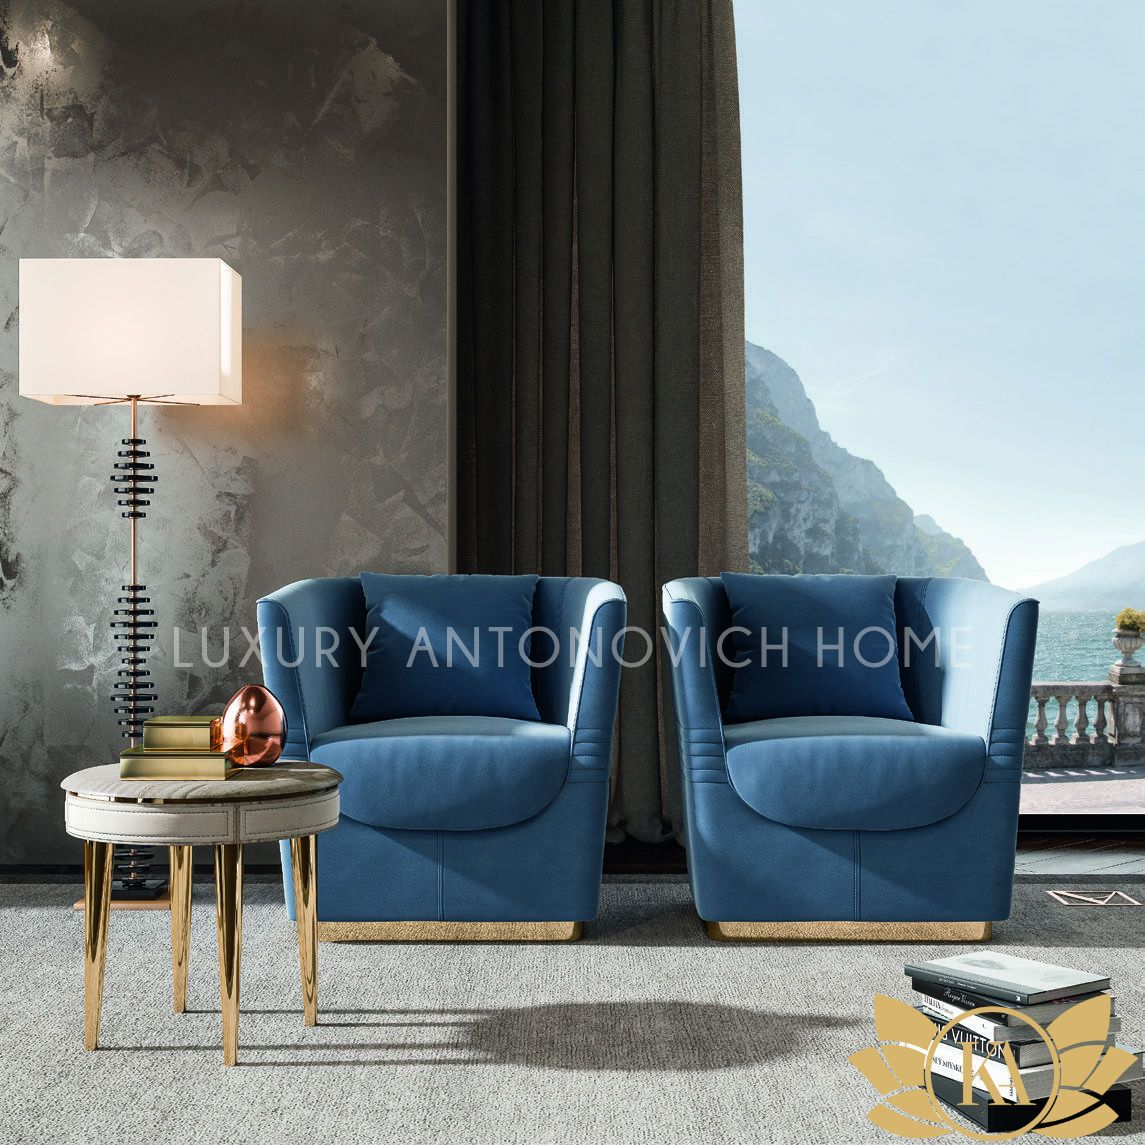 Italian Furniture Store In Dubai Italian Furniture Stores Interior Design Companies Luxury Furniture